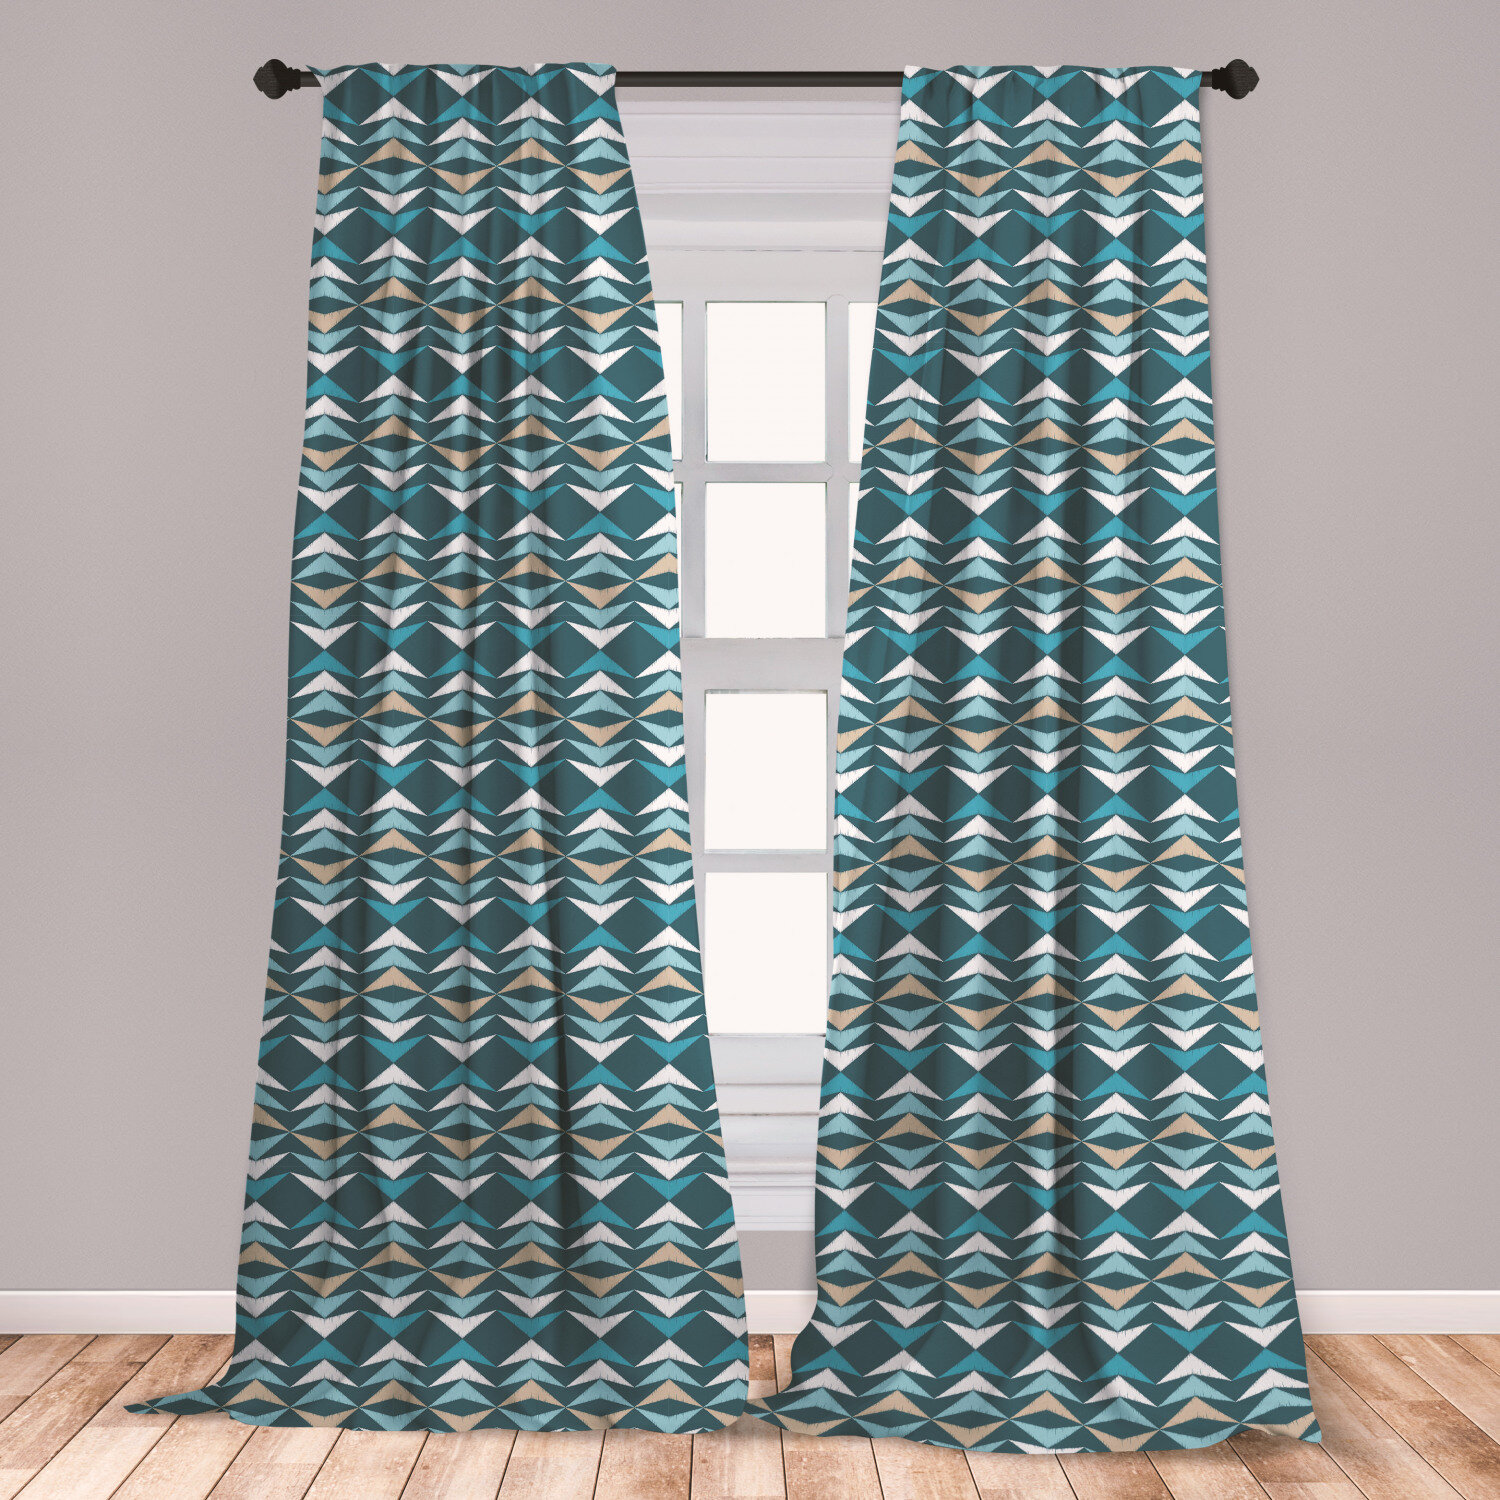 East Urban Home Ambesonne Boho Curtains Arrow Pattern With Grunge Worn Out Effect Retro Inspirations Culture Window Treatments 2 Panel Set For Living Room Bedroom Decor 56 X 63 Multicolor Wayfair